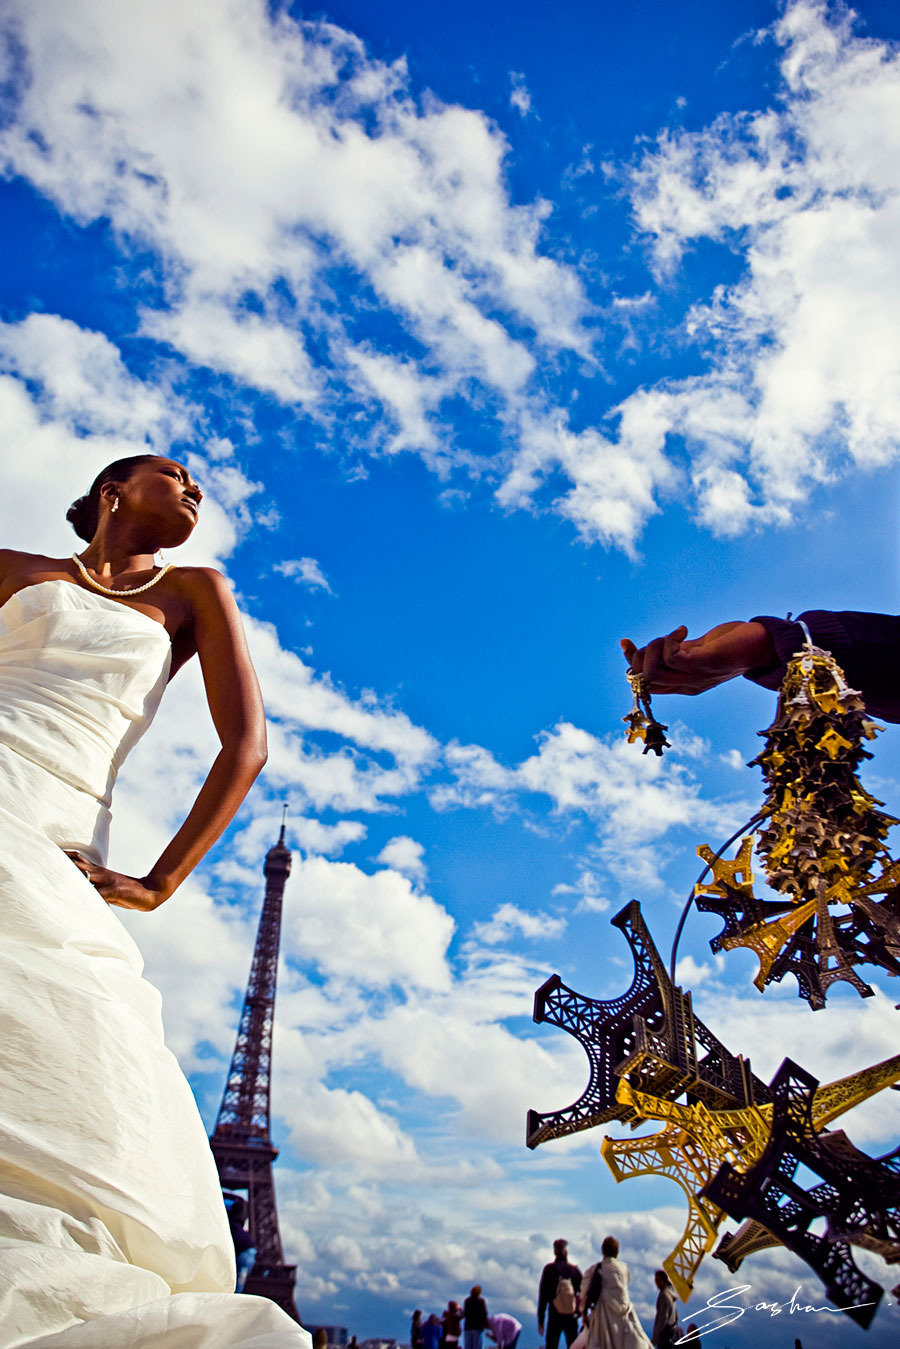 Sasha_Photography_bride-Eiffel-Tower-Paris